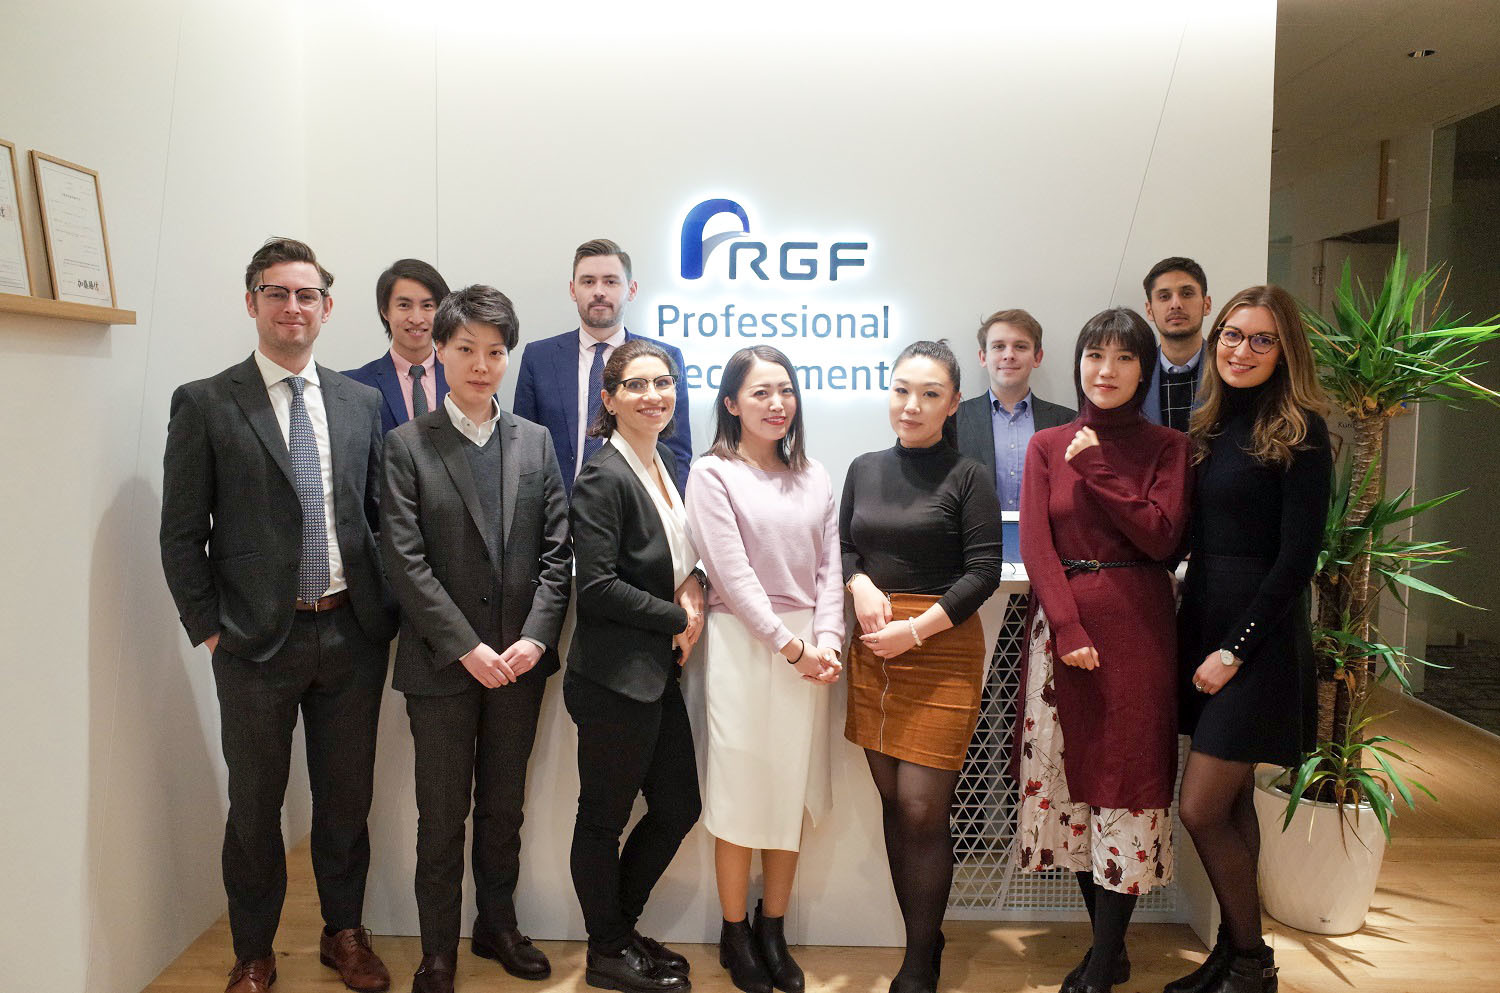 Finance & Accounting Team @ RGF Professional Recruitment Japan